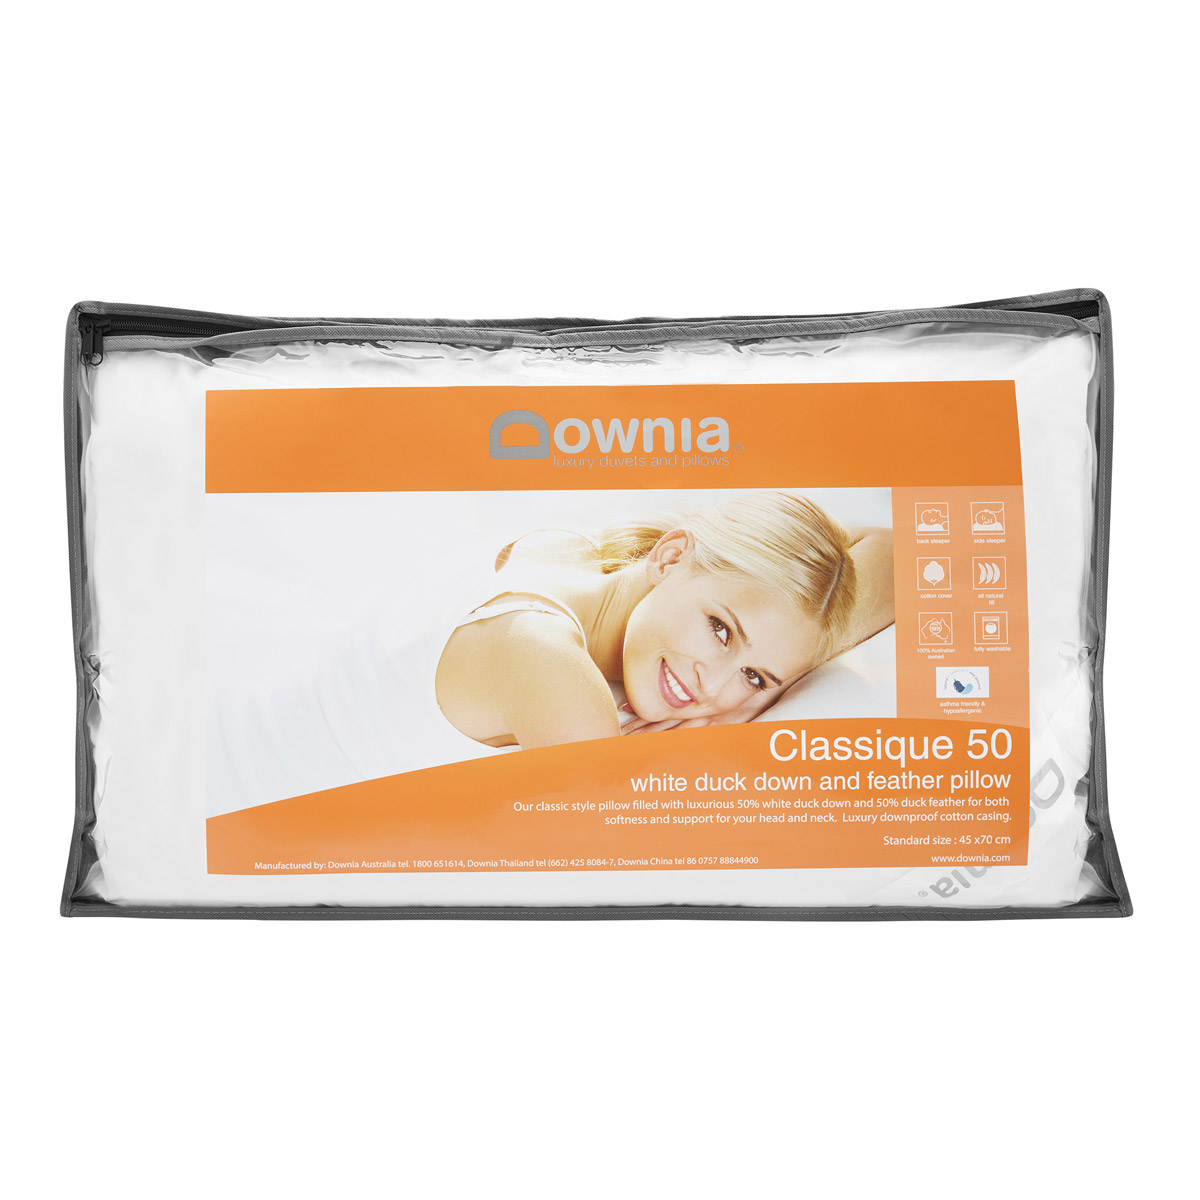 Downia 50% Duck Down and Feather Pillow